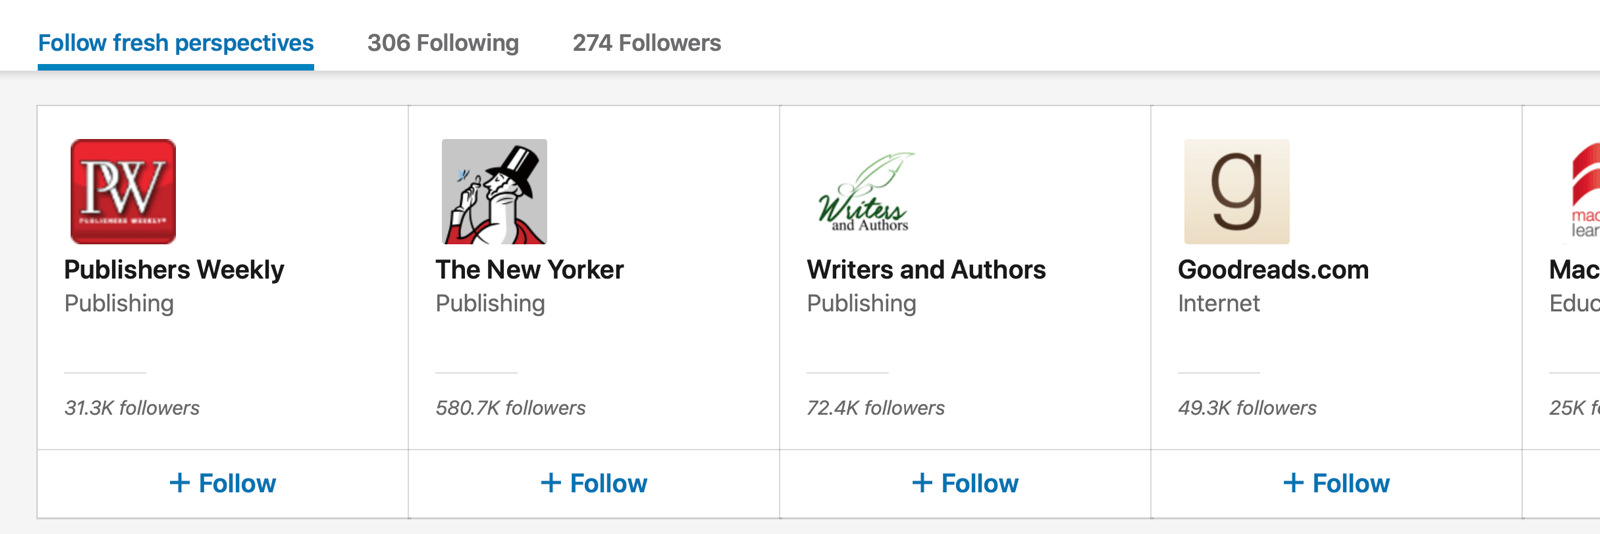 example of buttons recommended under the follow fresh perspectives tab